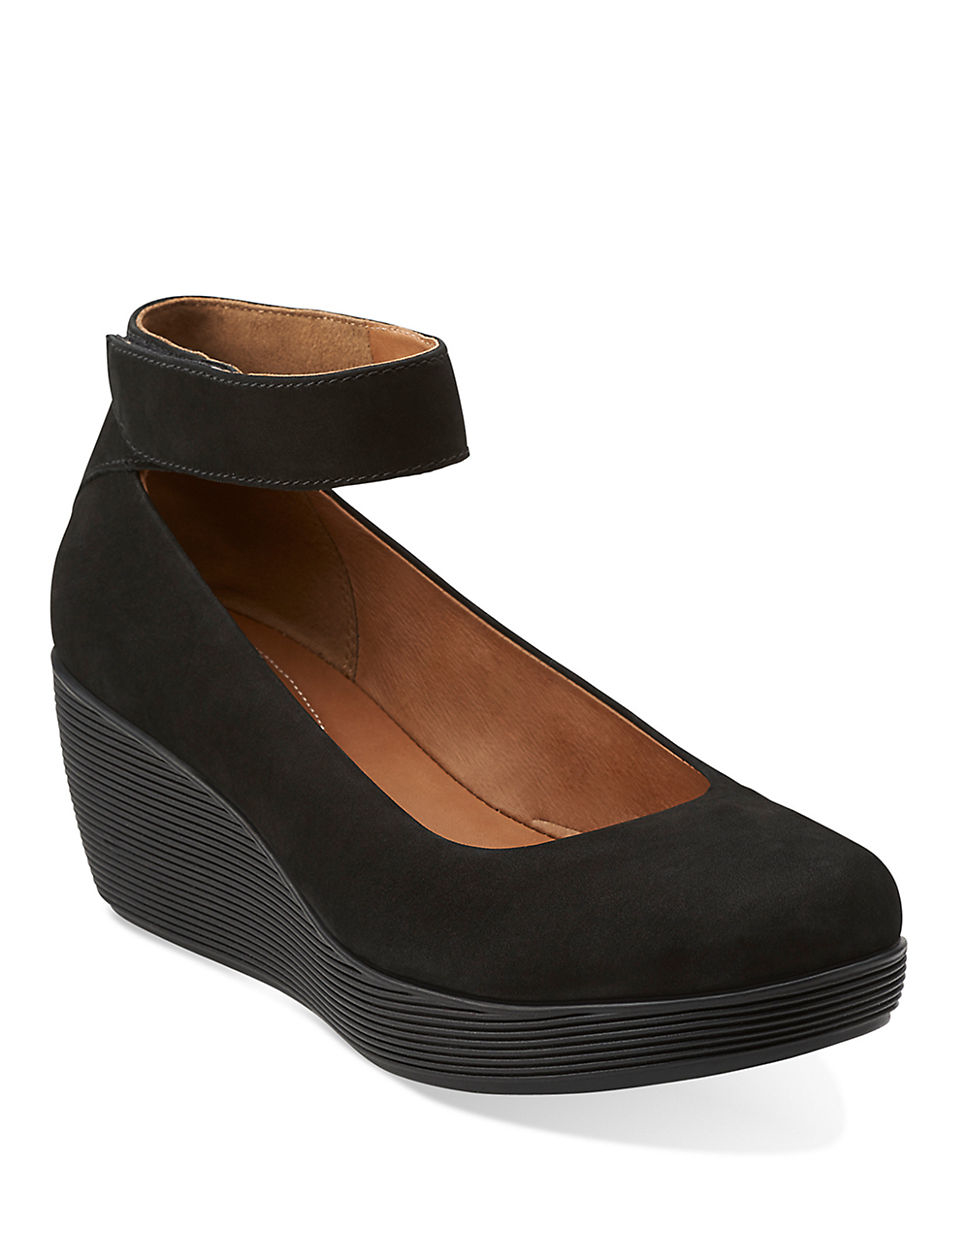 Lyst Clarks Claribel Fame Leather Mary Jane Platform